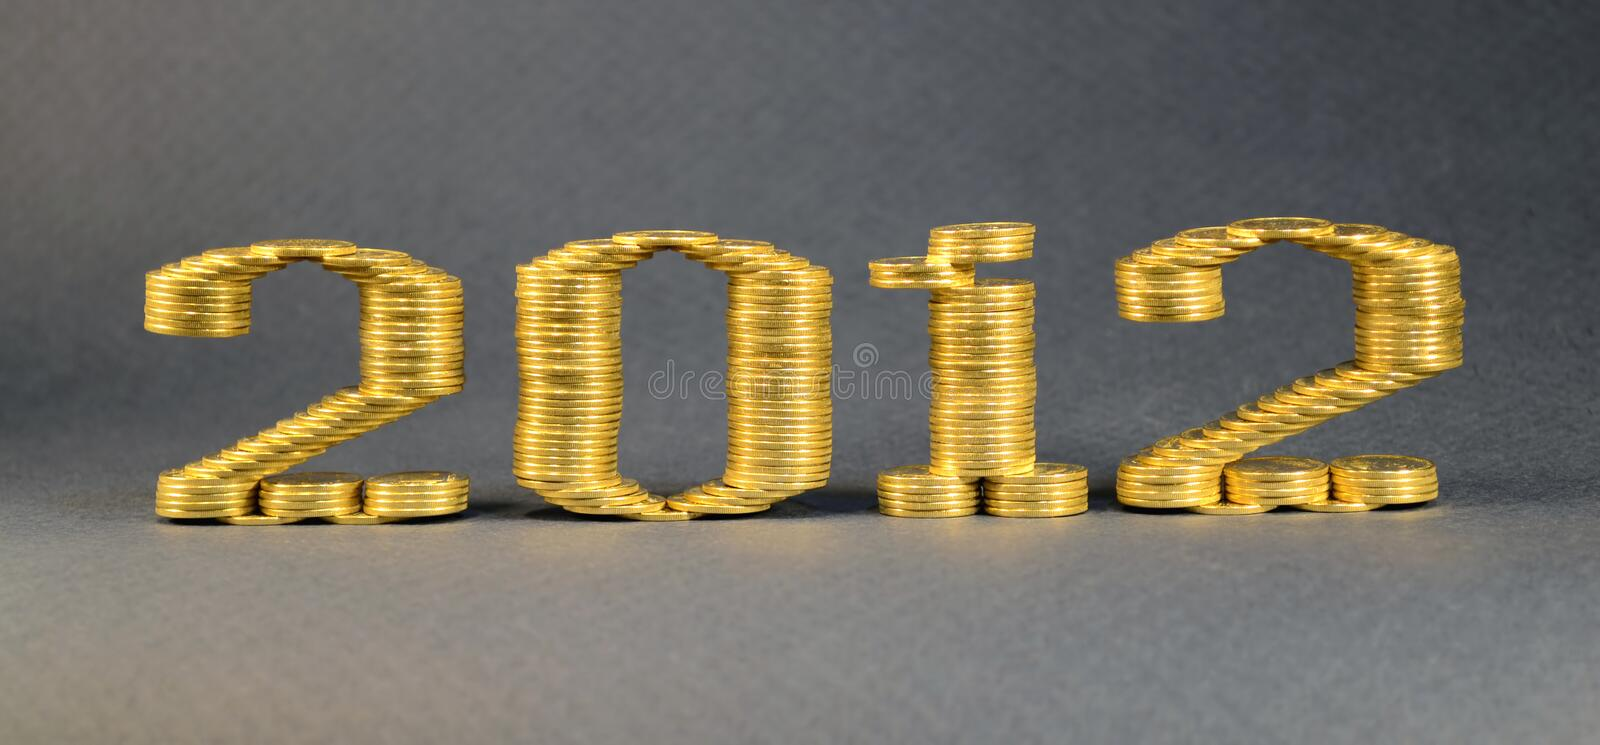 Number Two Thousand Twelfth Laid Stacks Of Coins Royalty Free Stock Photo